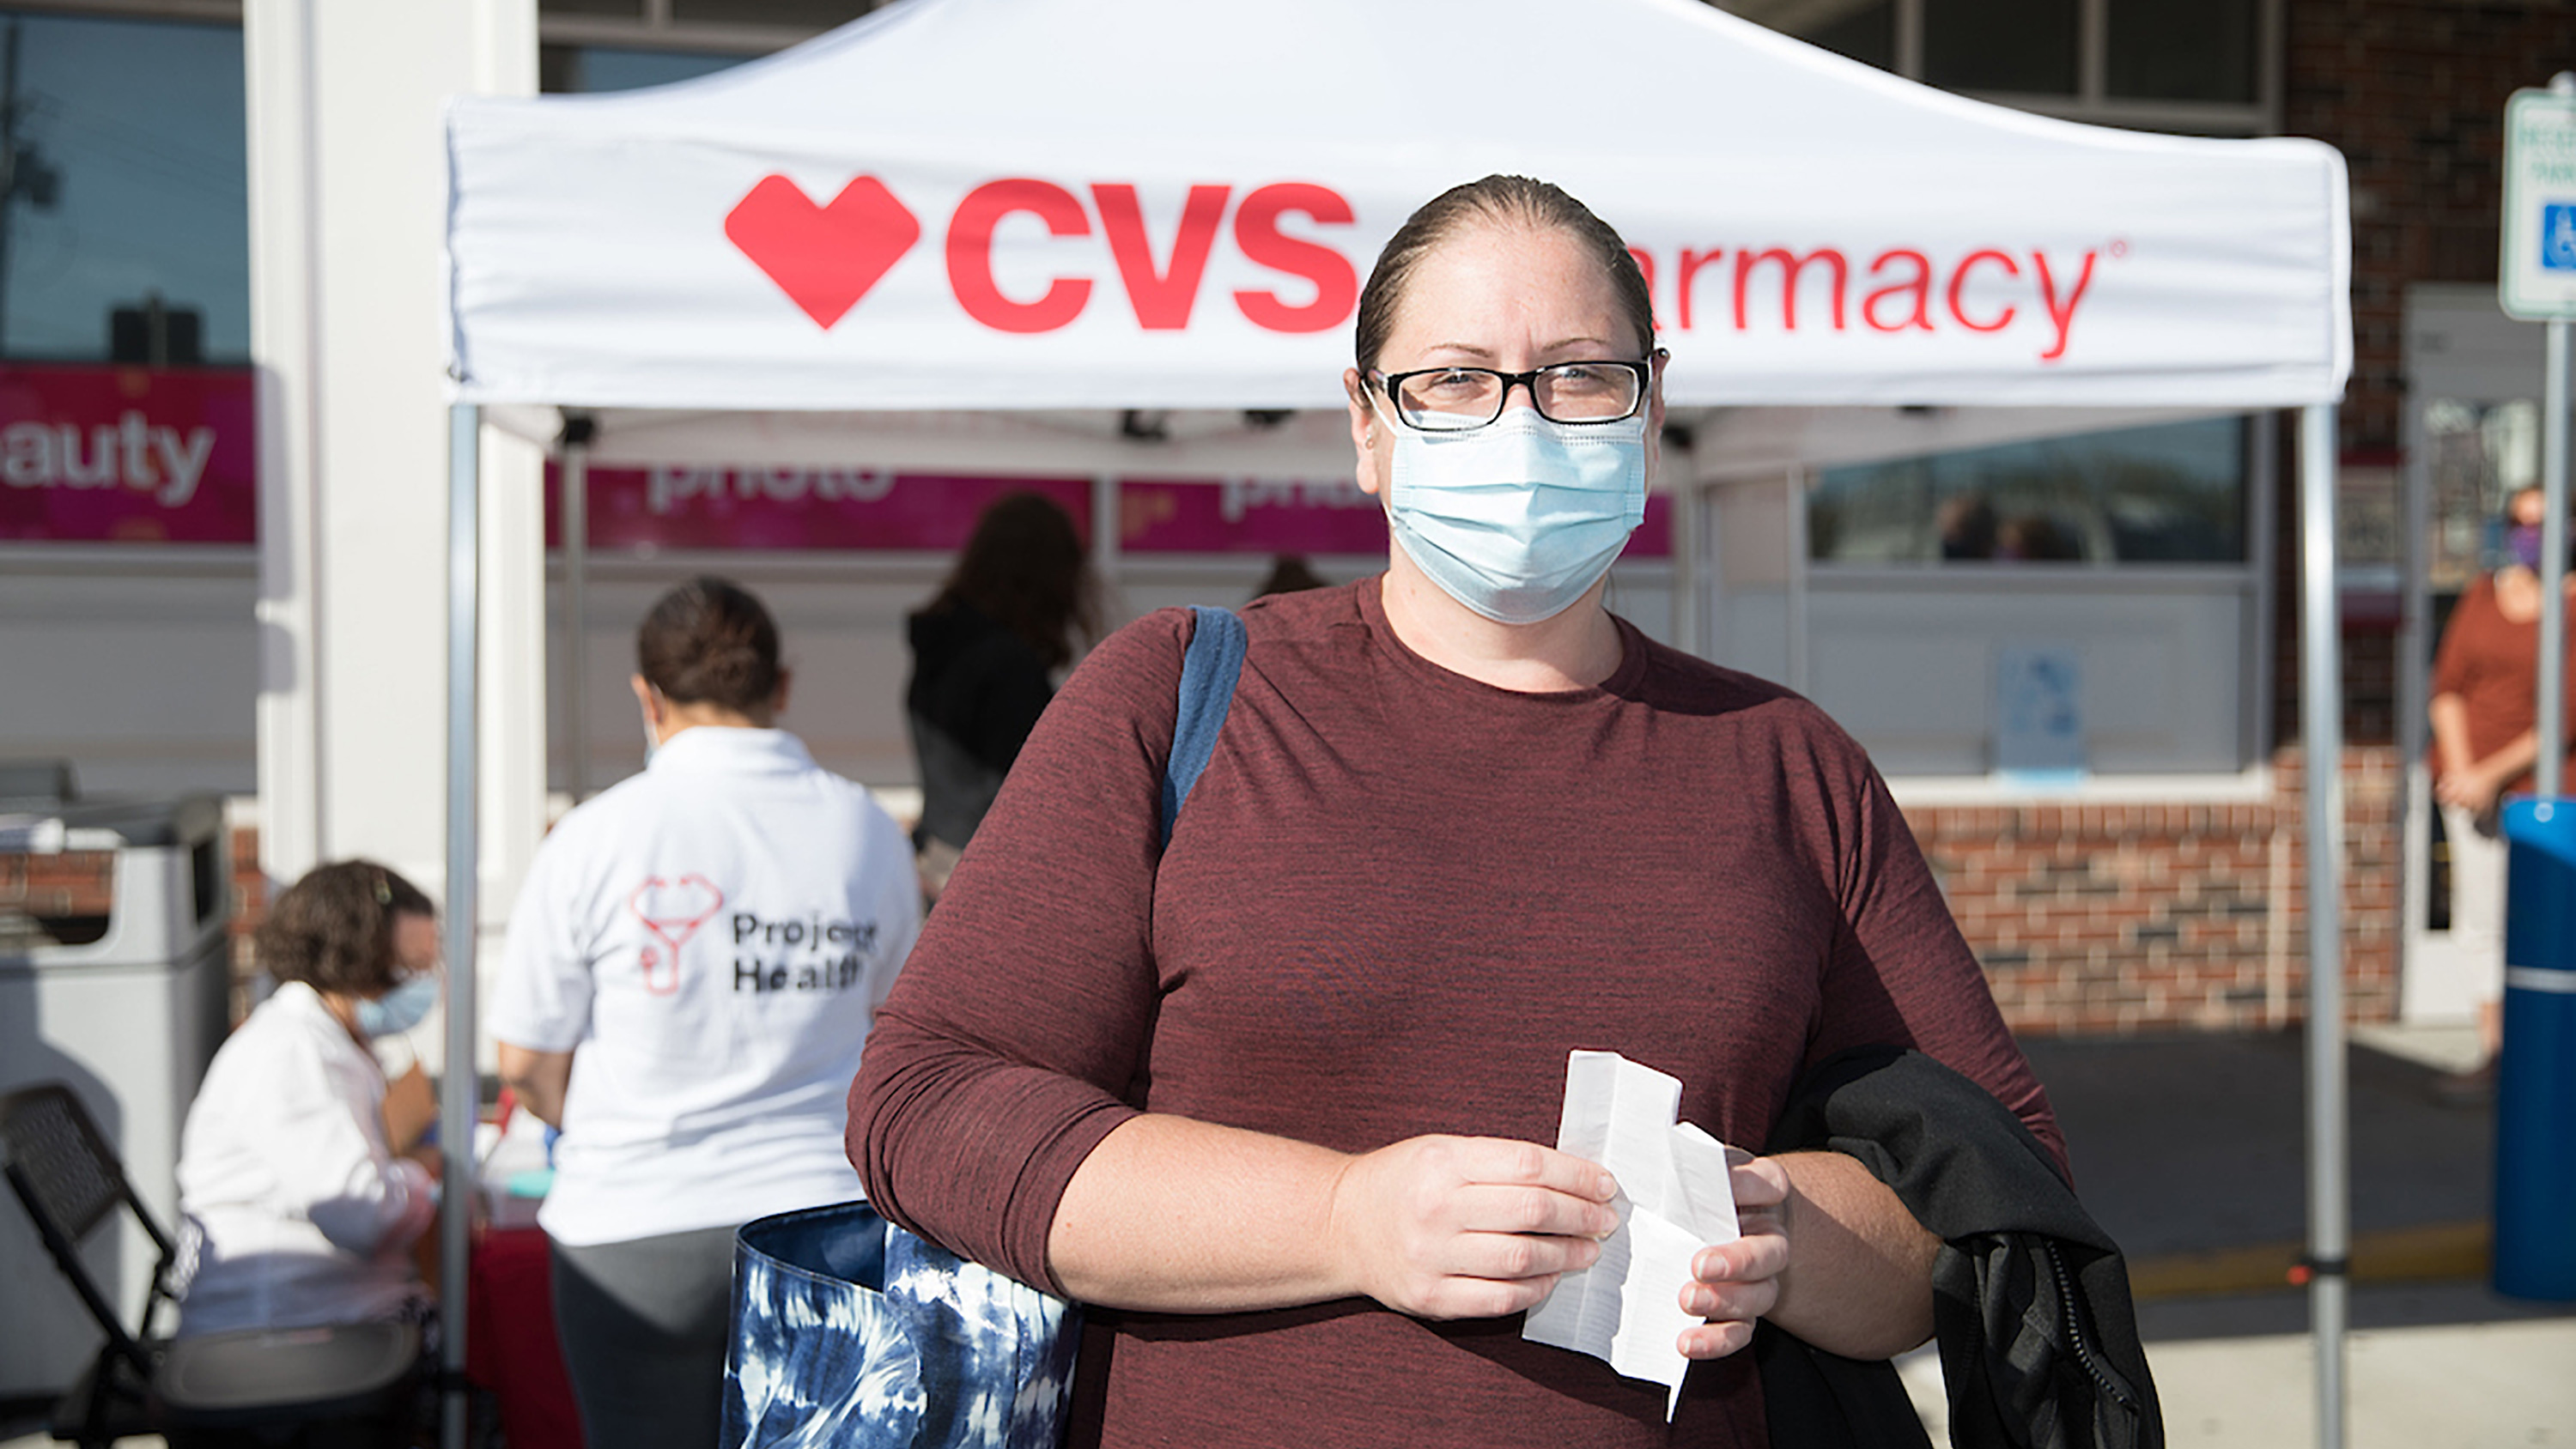 A female customer standing at a Project Health booth located in the parking lot of her local CVS Pharmacy.